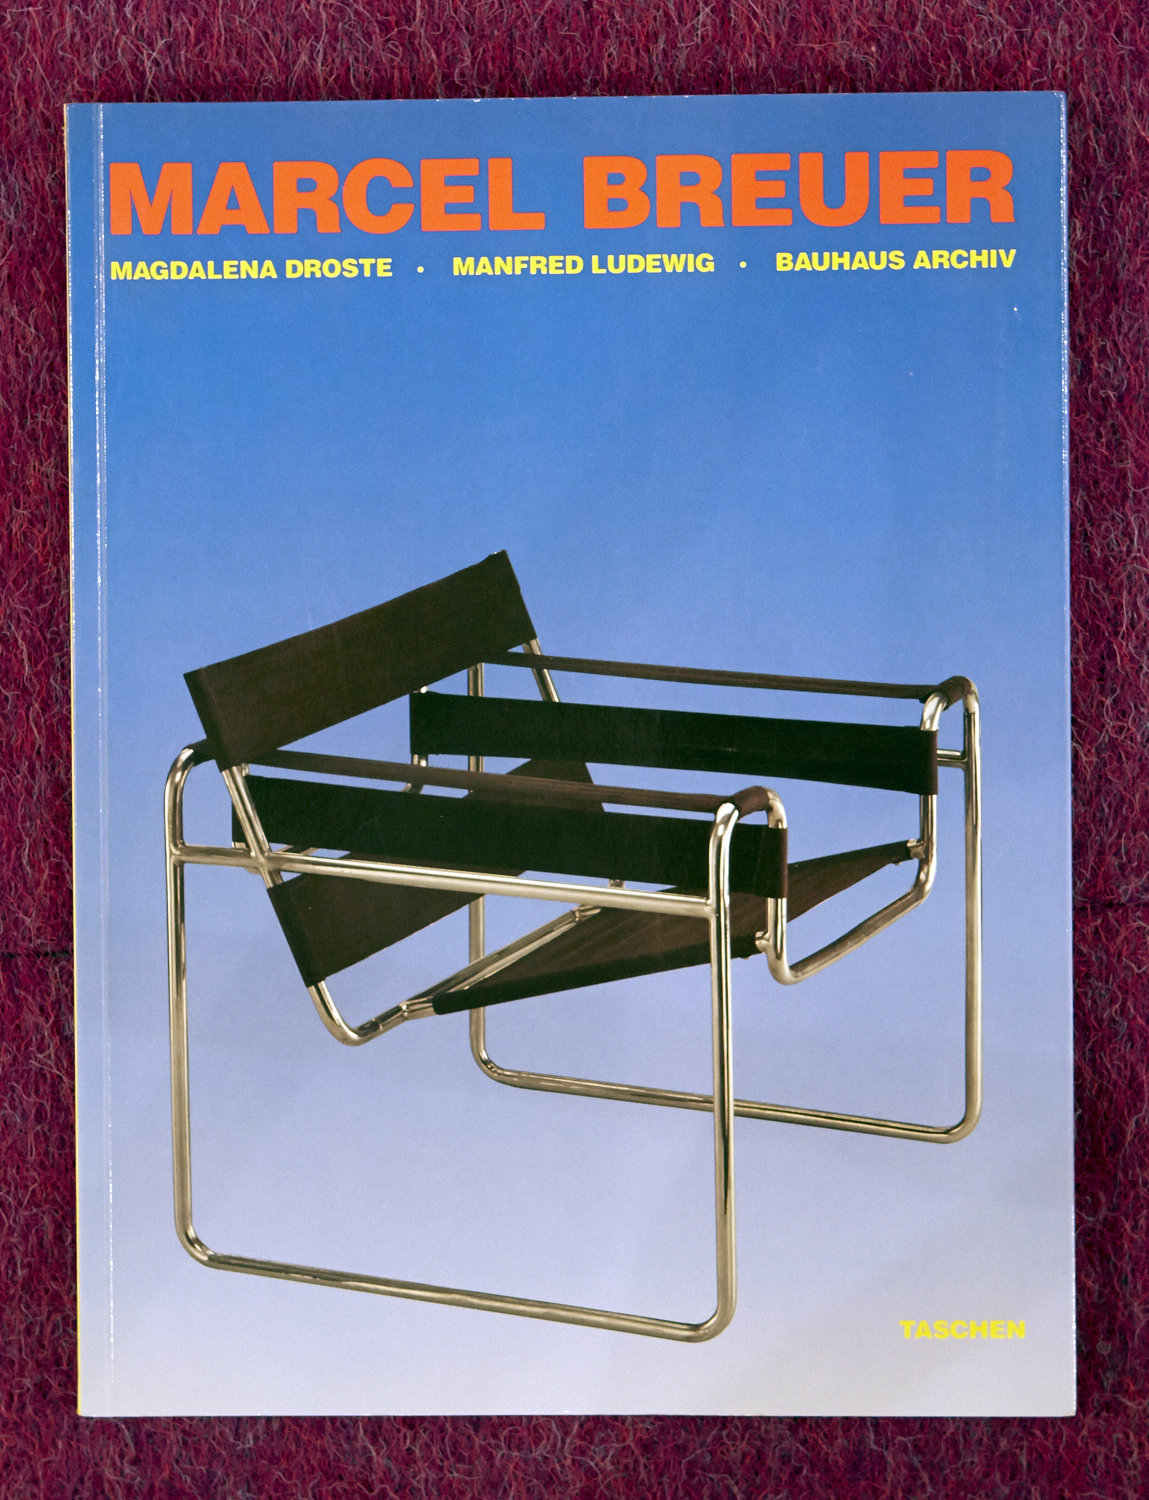 Marcel Breuer Marcel Breuer By Magdalena Droste And Manfred Ludewig — Donzella